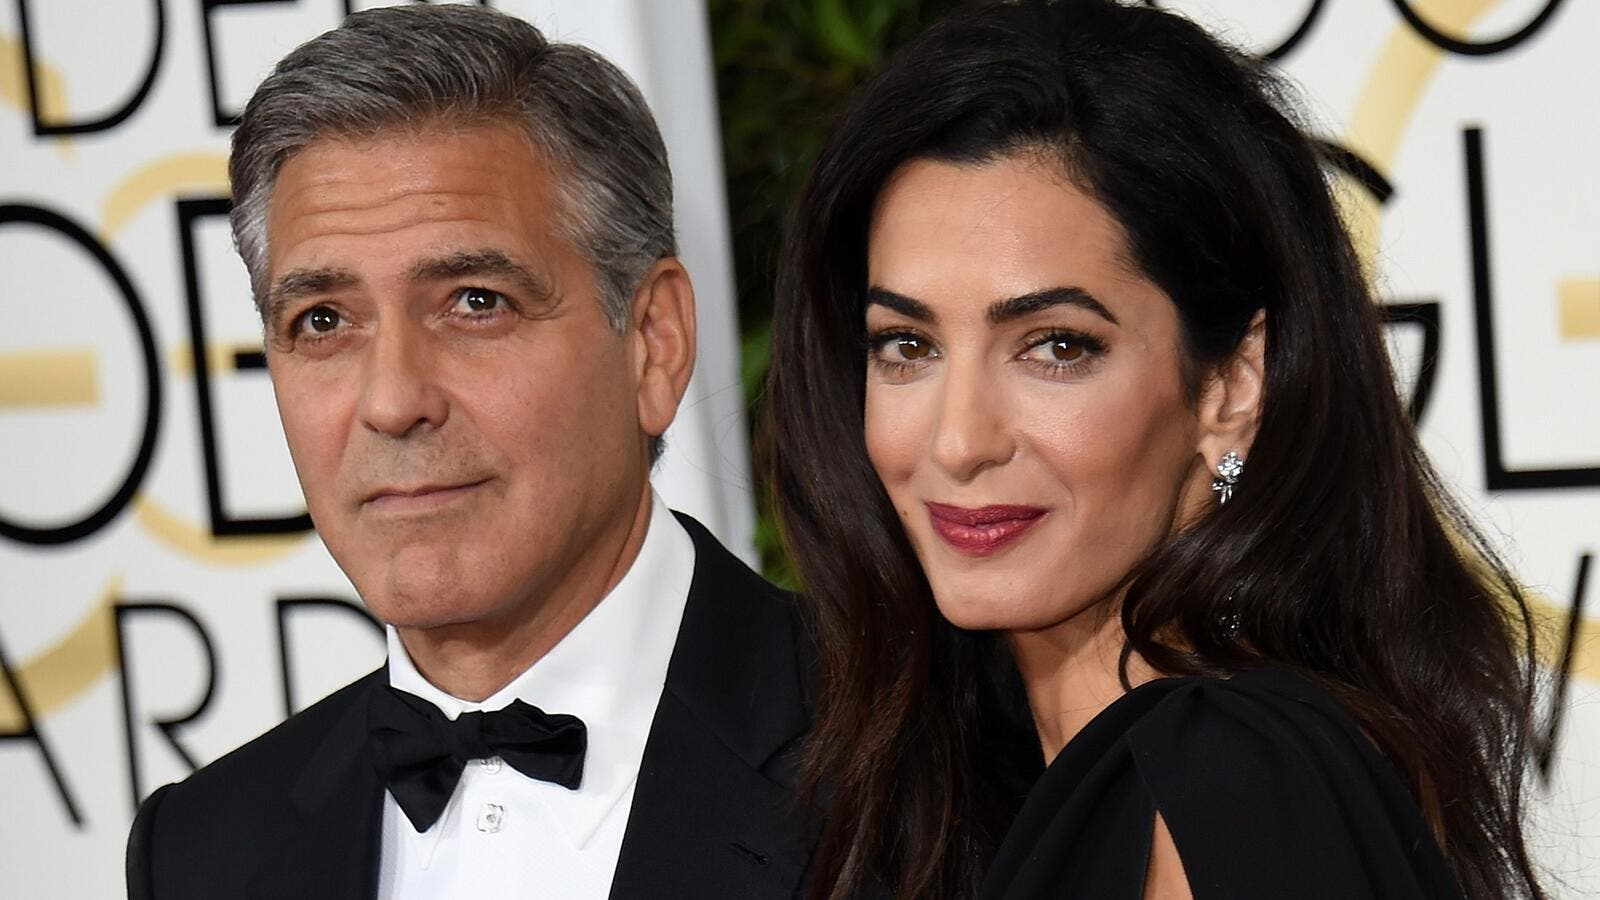 George Clooney isn't looking forward to hitting 60 in five years' time. (File photo)